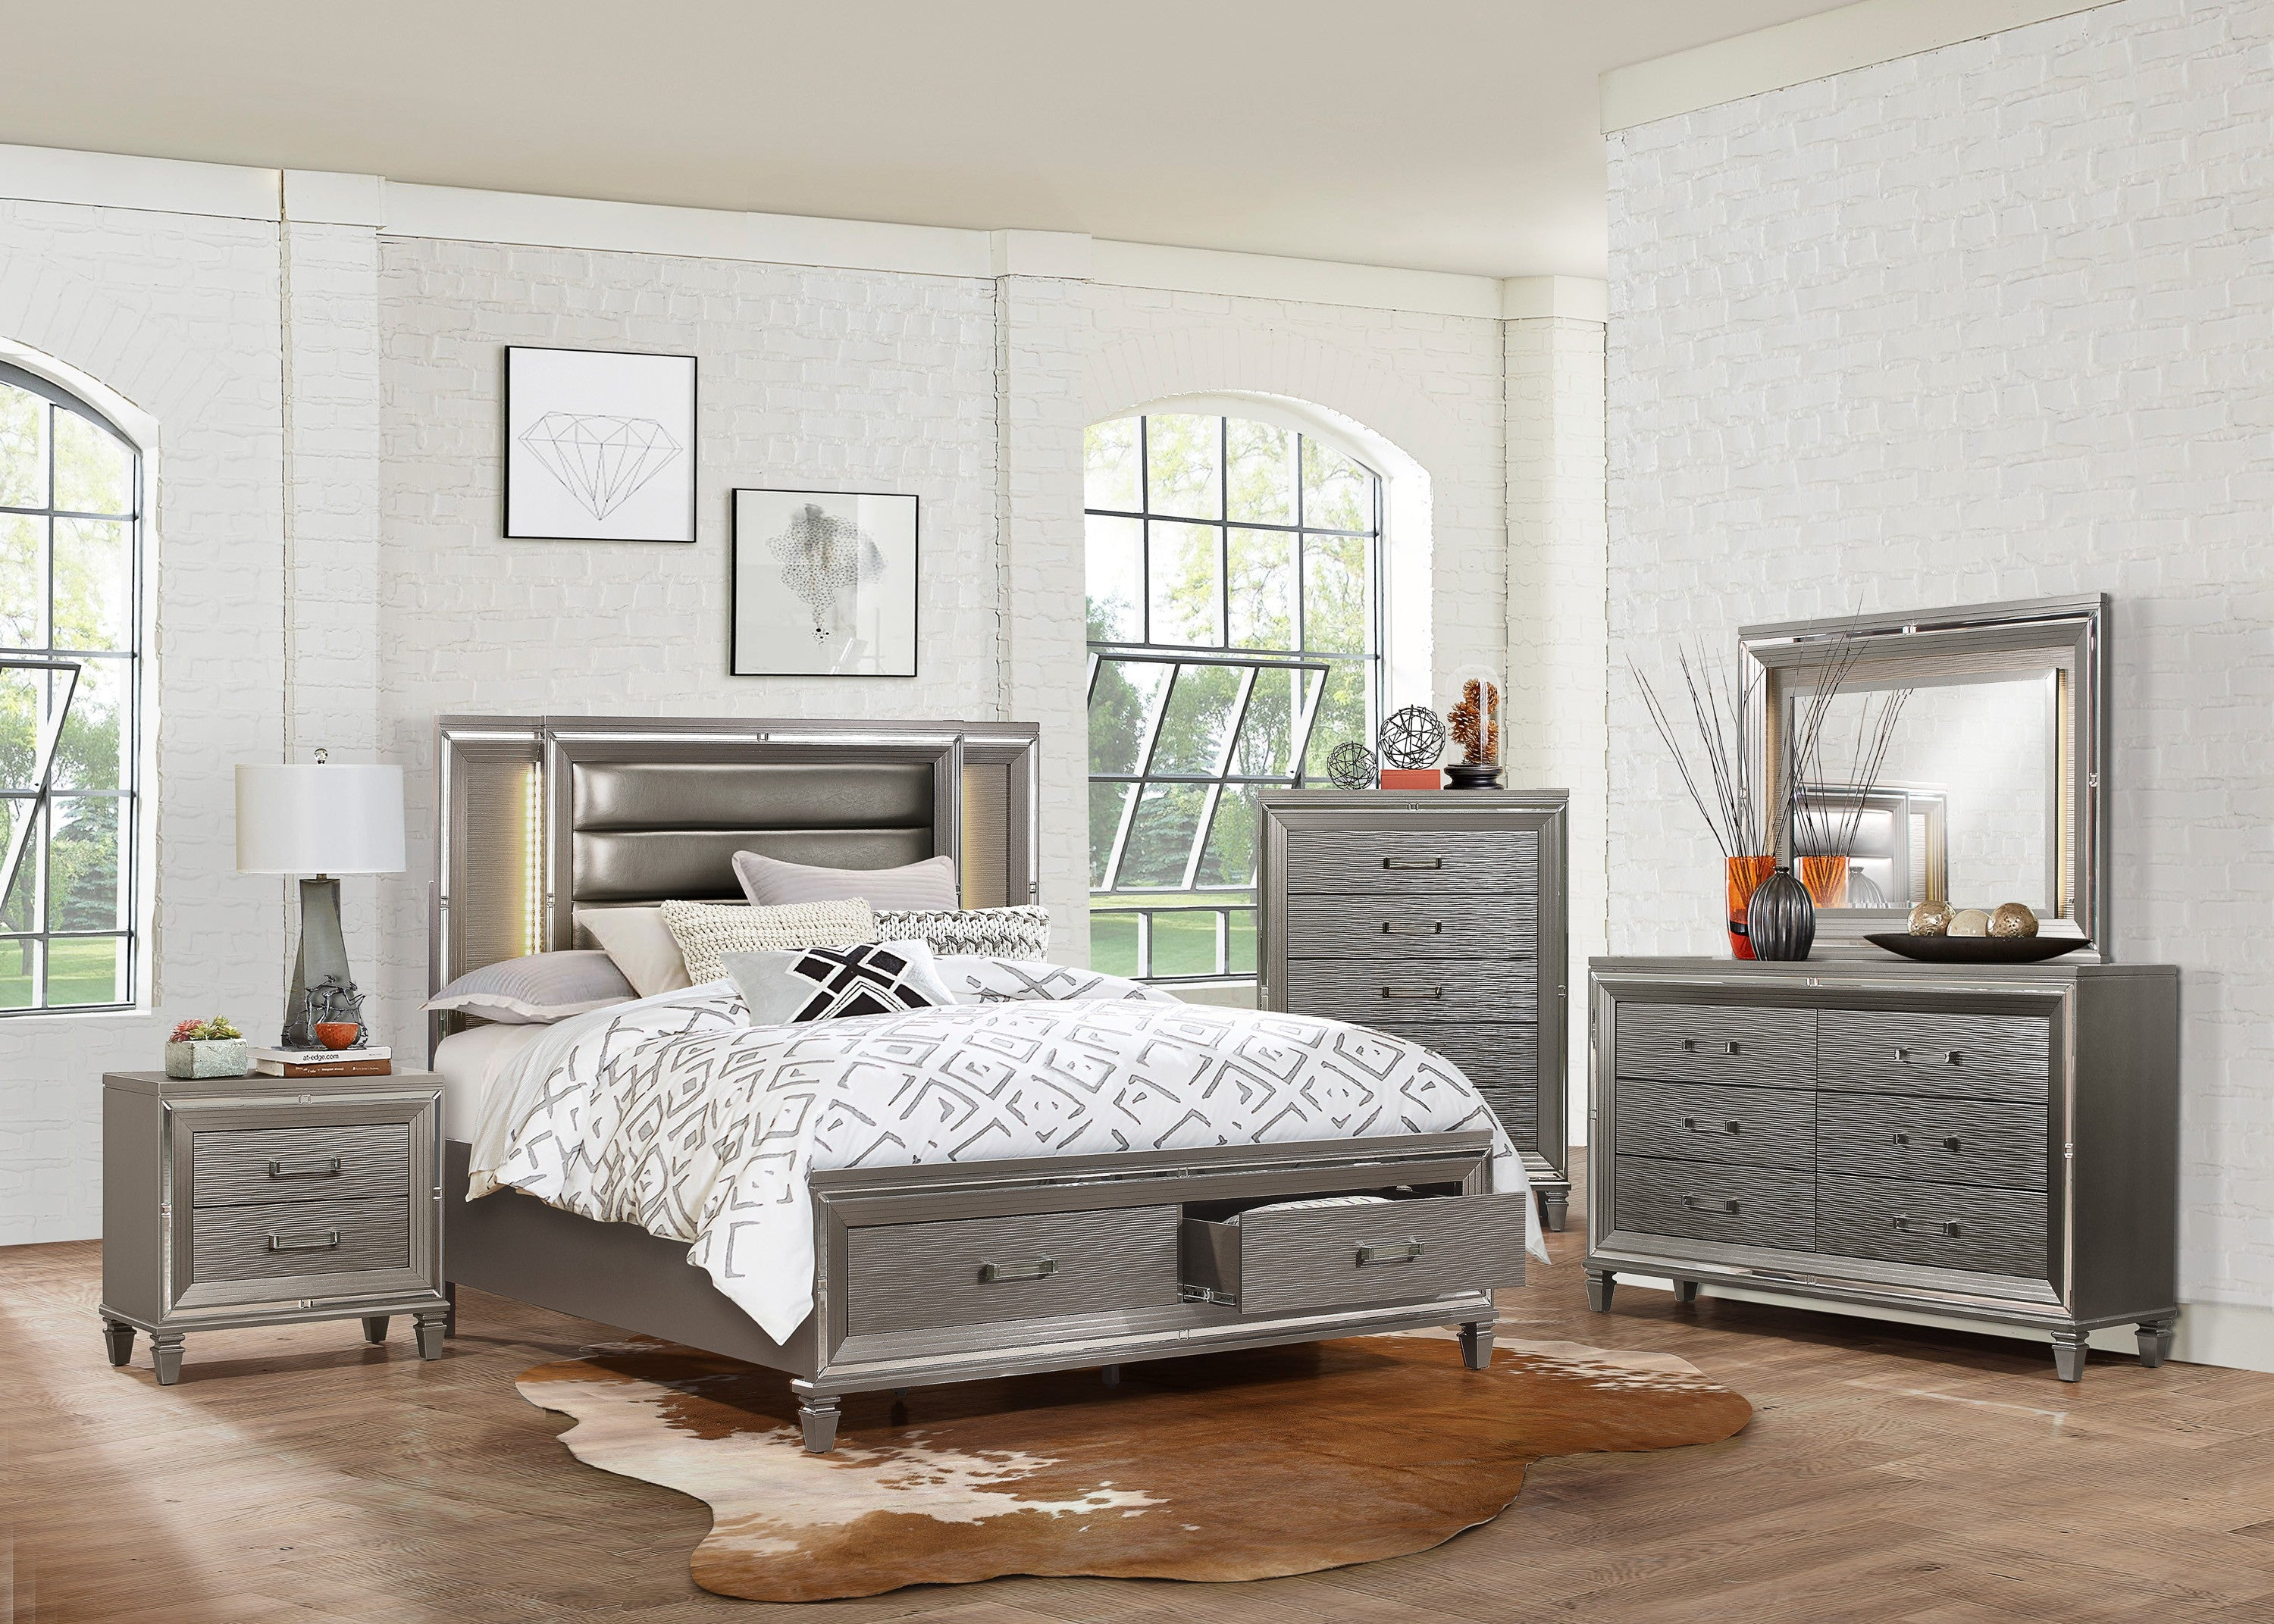 Tamsin Metallic Silver Gray Led Storage Platform Bedroom Set From Homelegance Luna Furniture